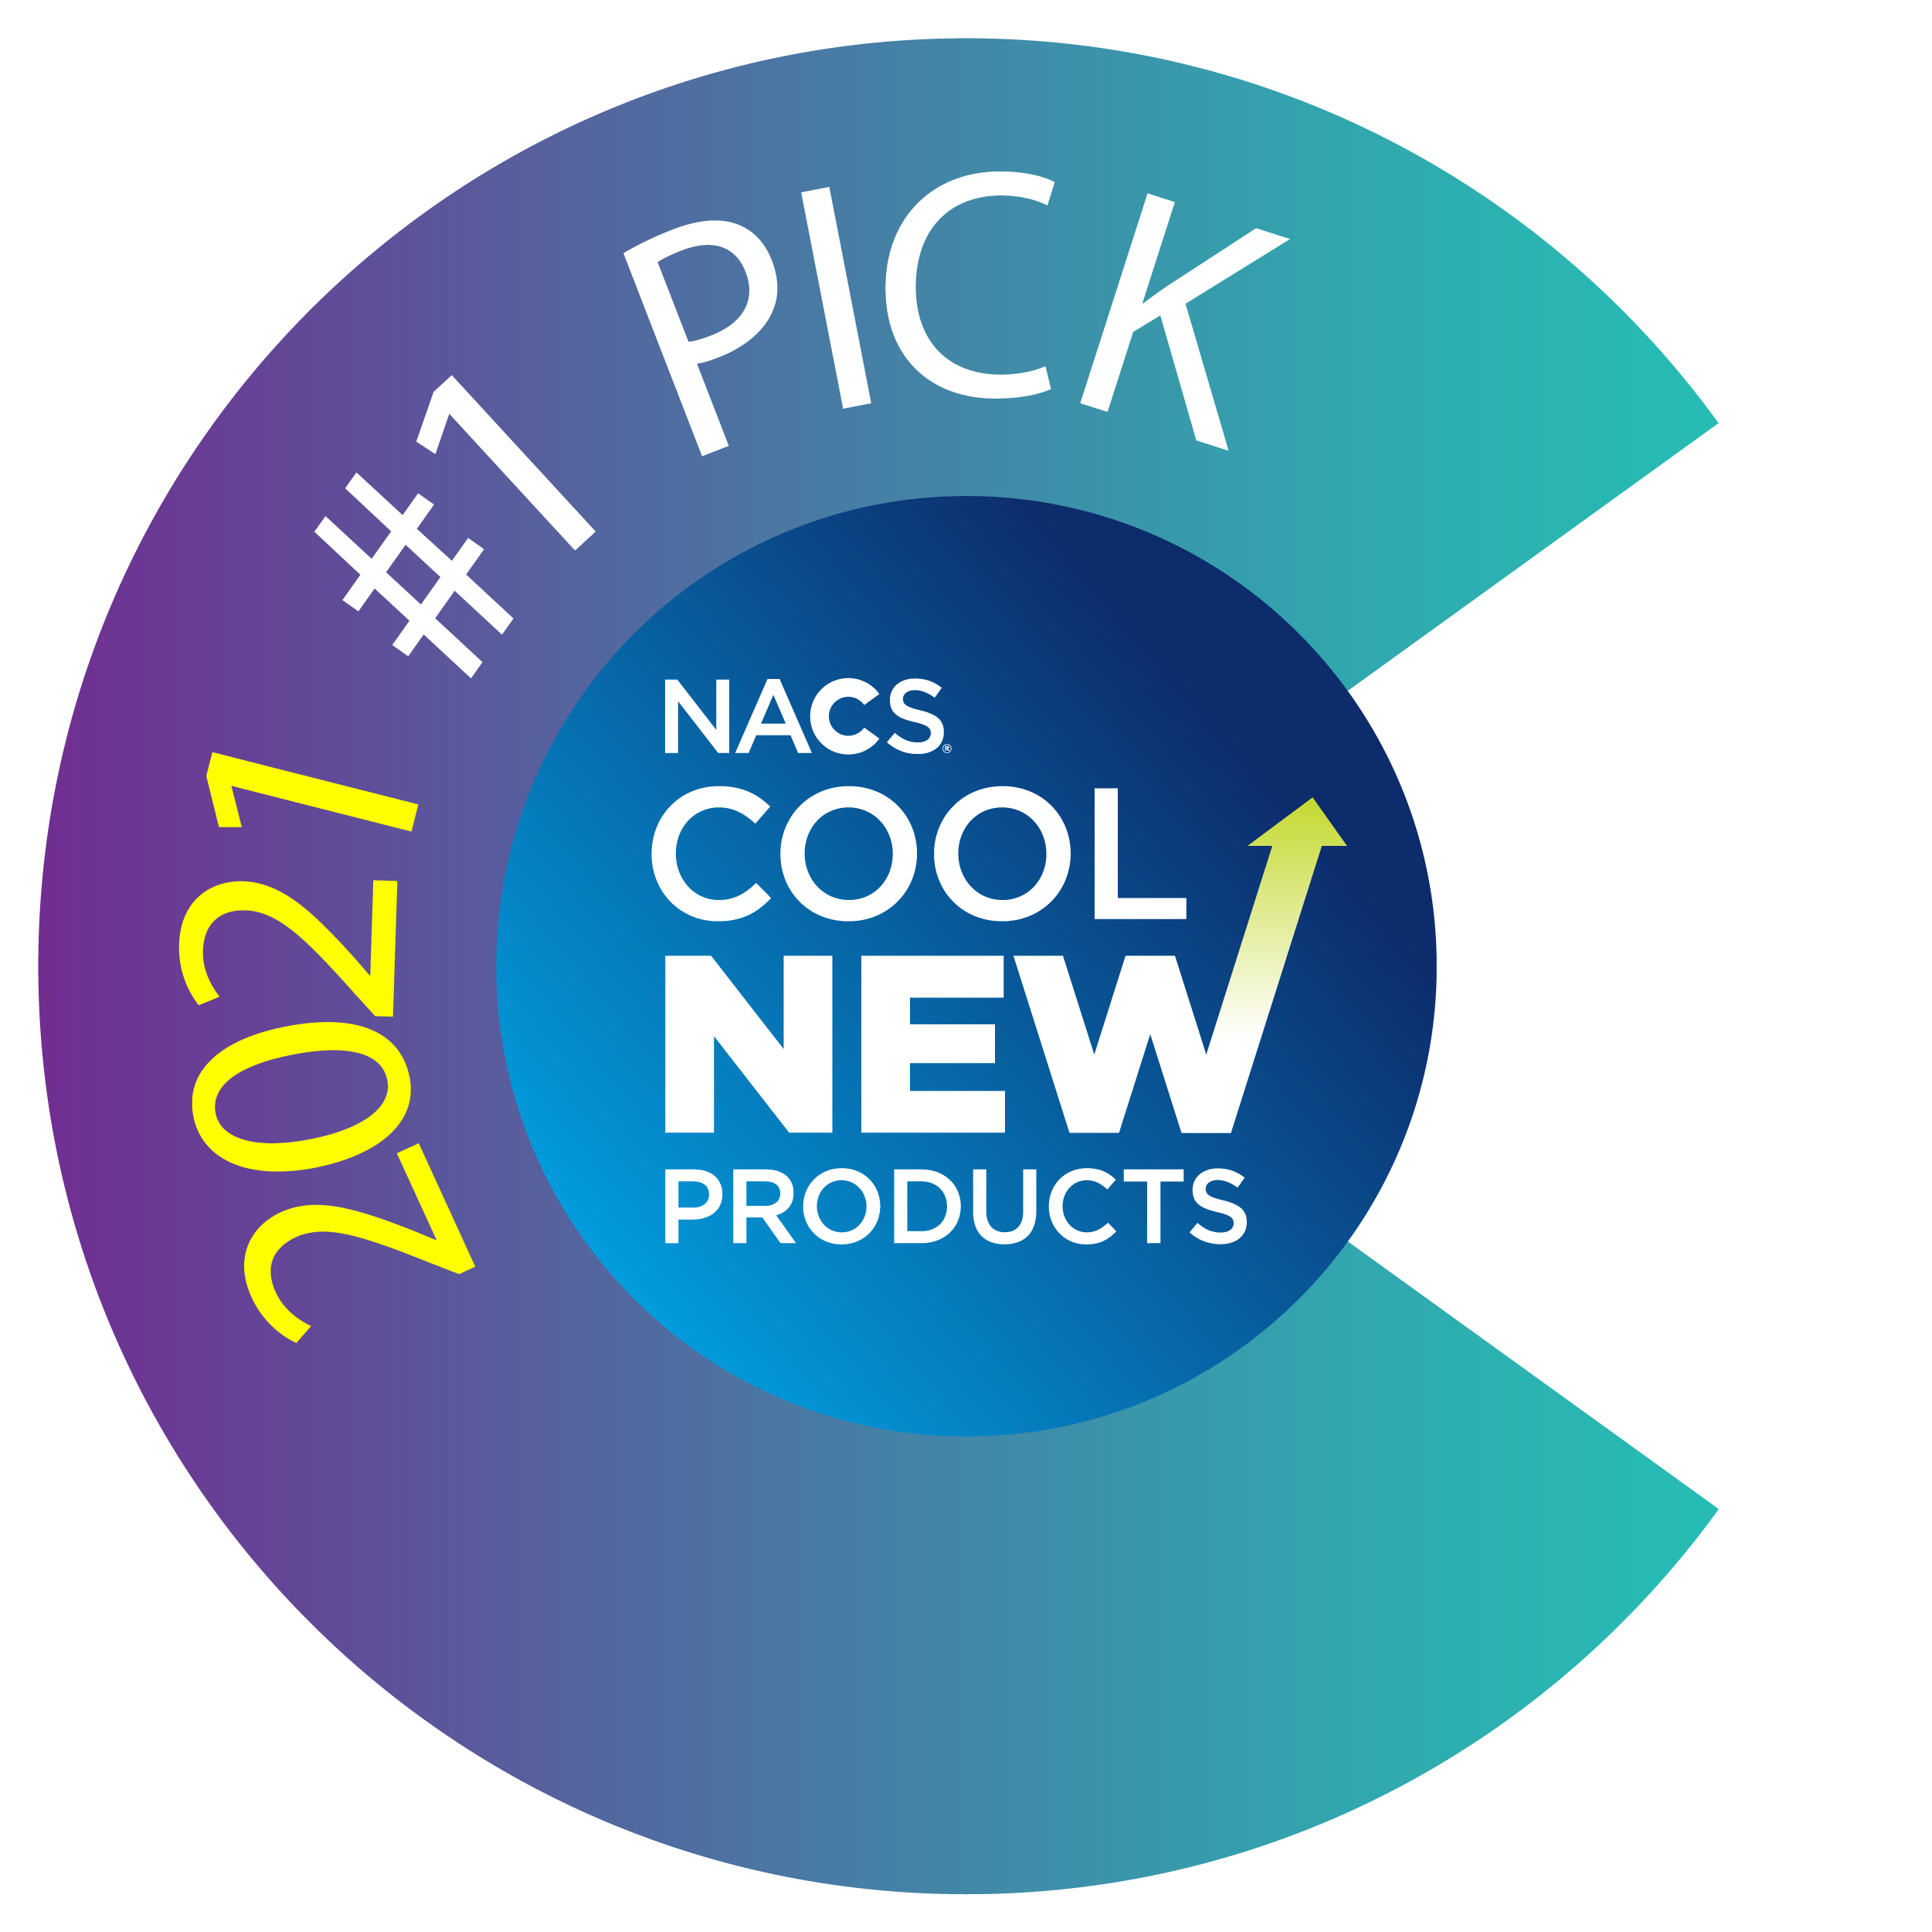 #1 Cool New Product of 2021 NACS Show